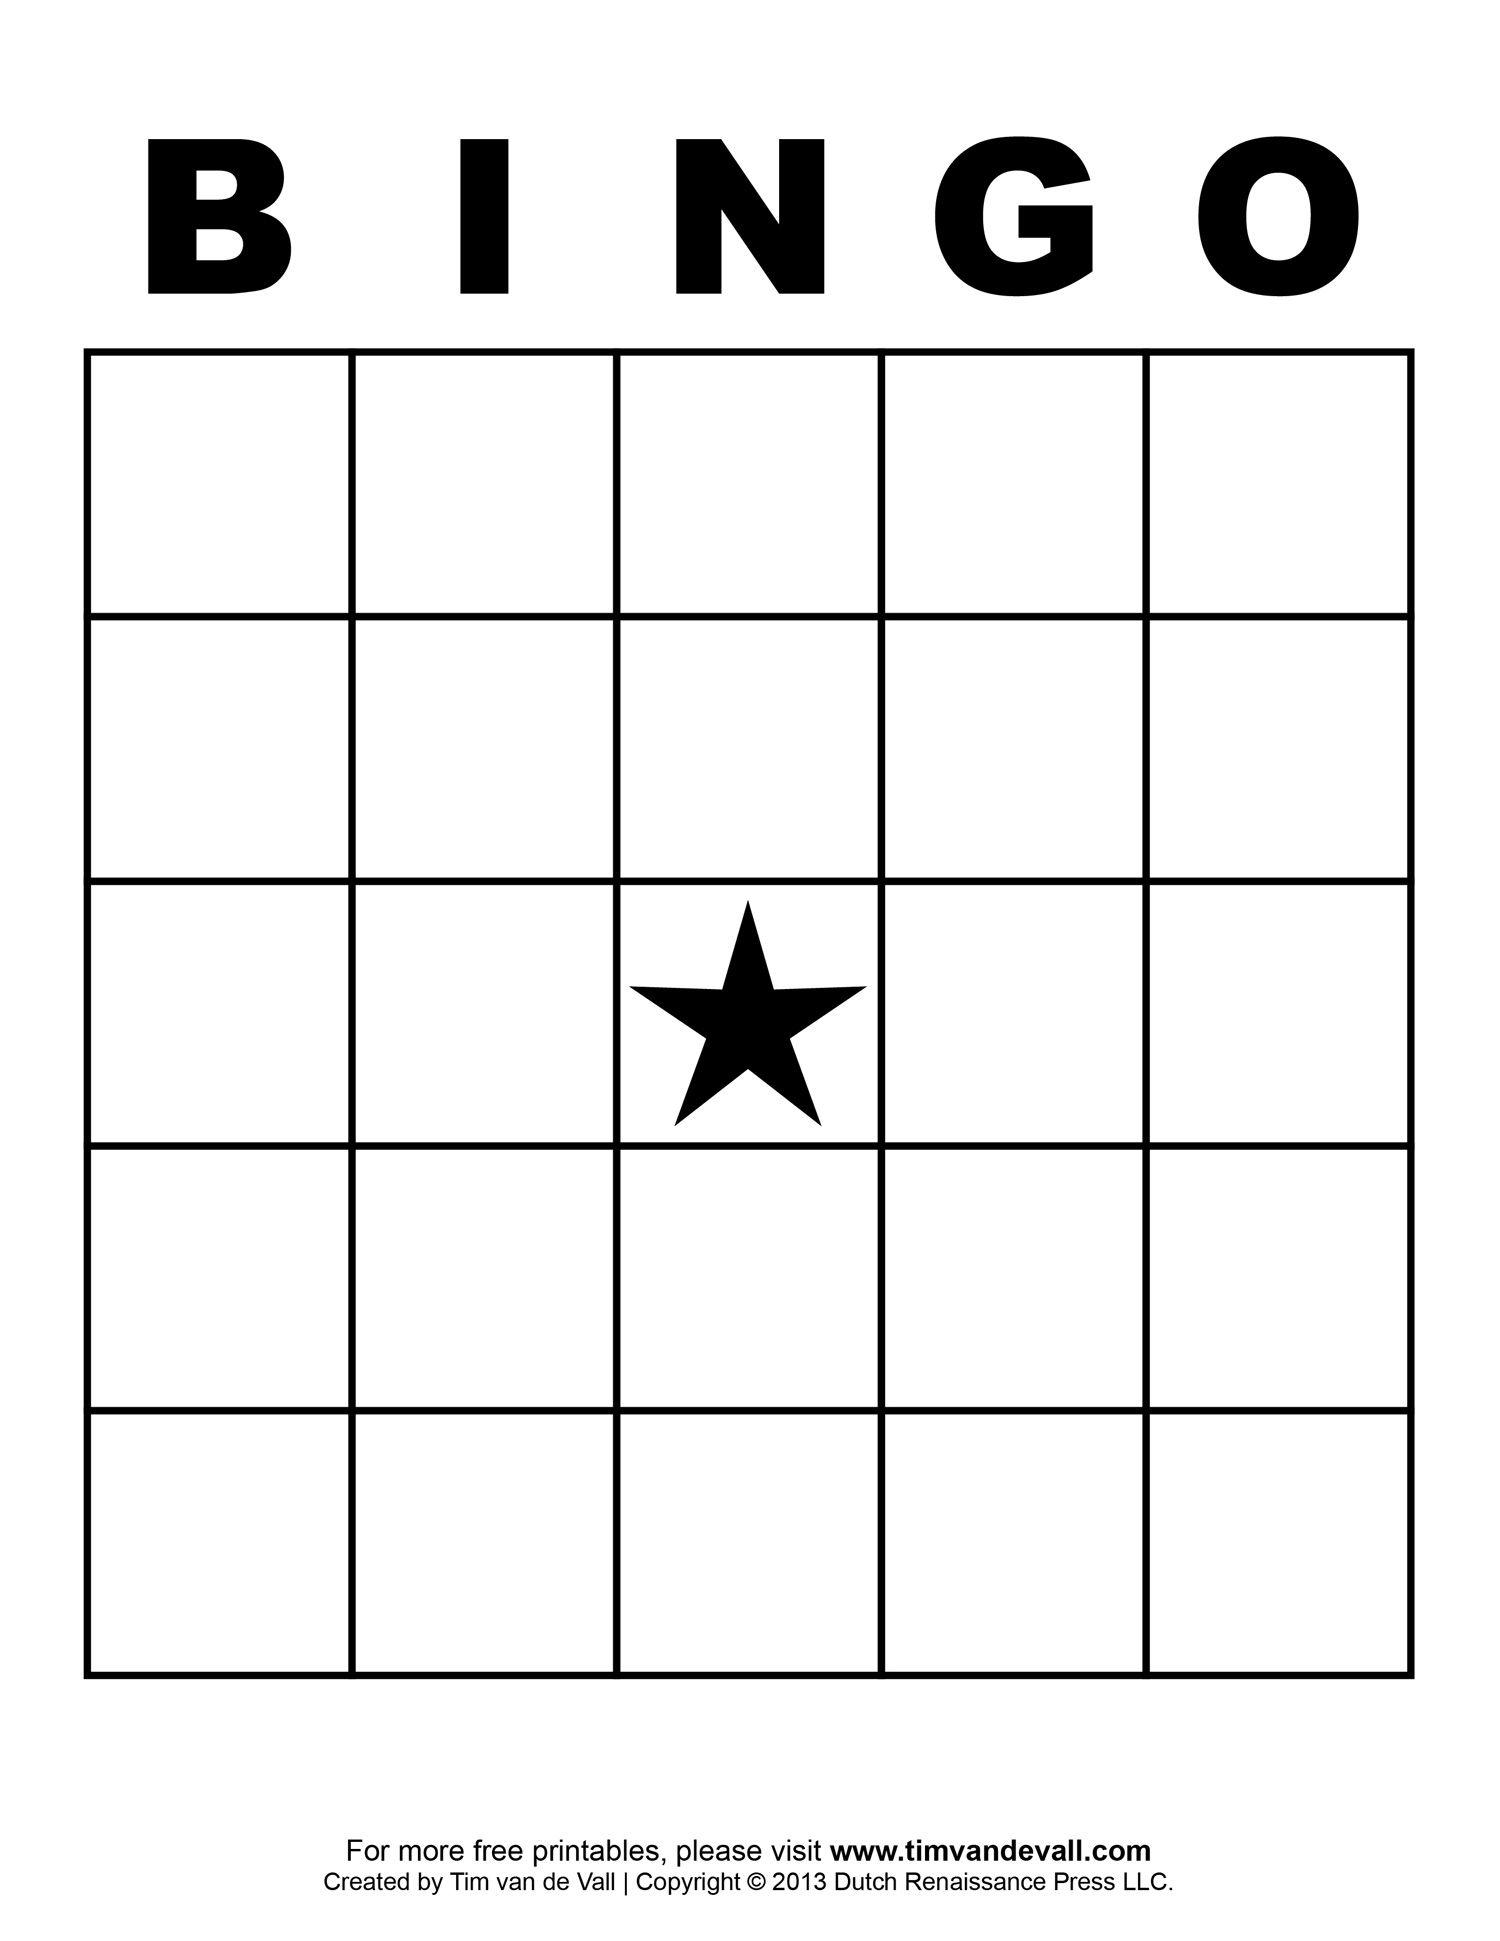 Free Printable Blank Bingo Cards Template 4 X 4 | Classroom | Sight - Free Printable Bingo Cards And Call Sheet